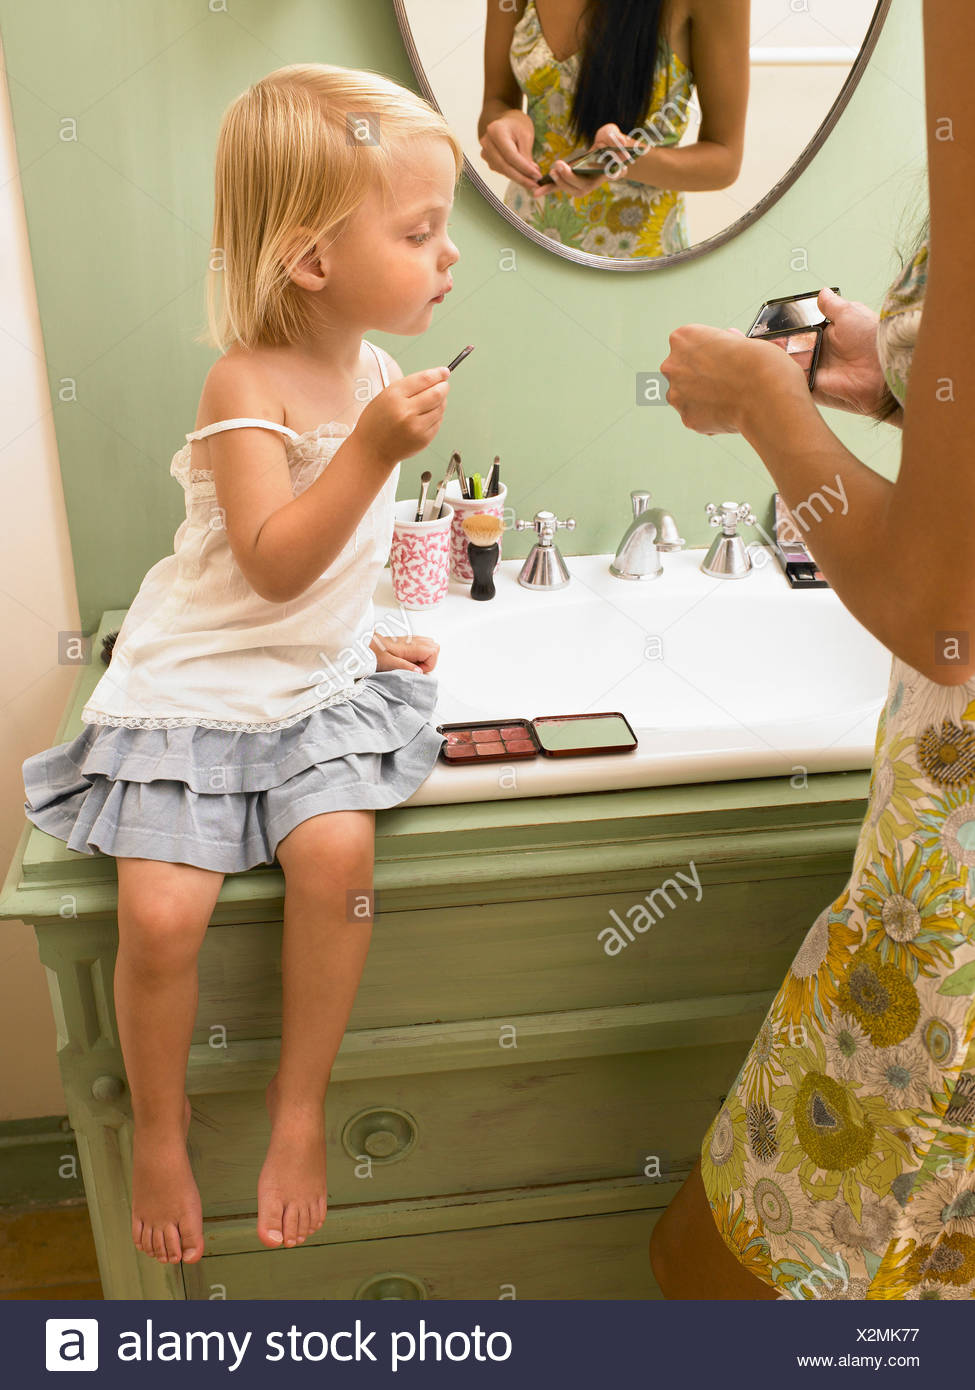 Mother and daughter applying makeup. - Stock Image